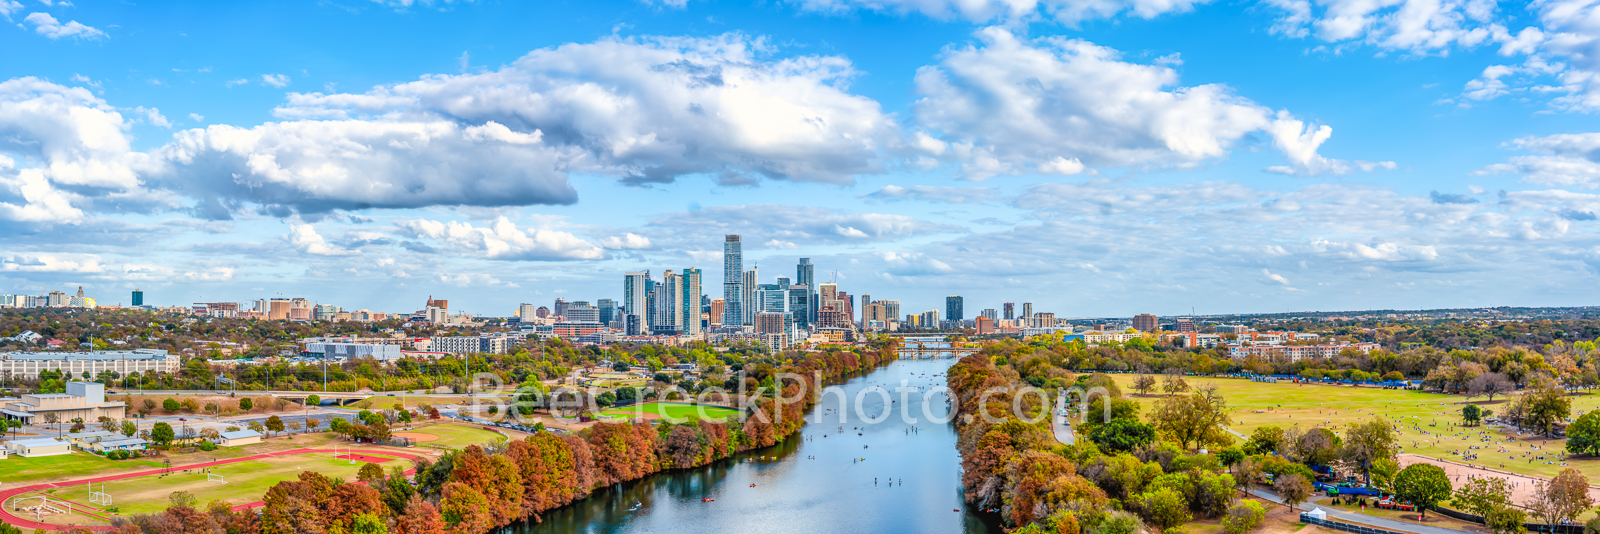 Distant View of Austin Skyline in Fall Pano - Fall can be fleeting in Texas, but we do have a short window where the bald cypress...